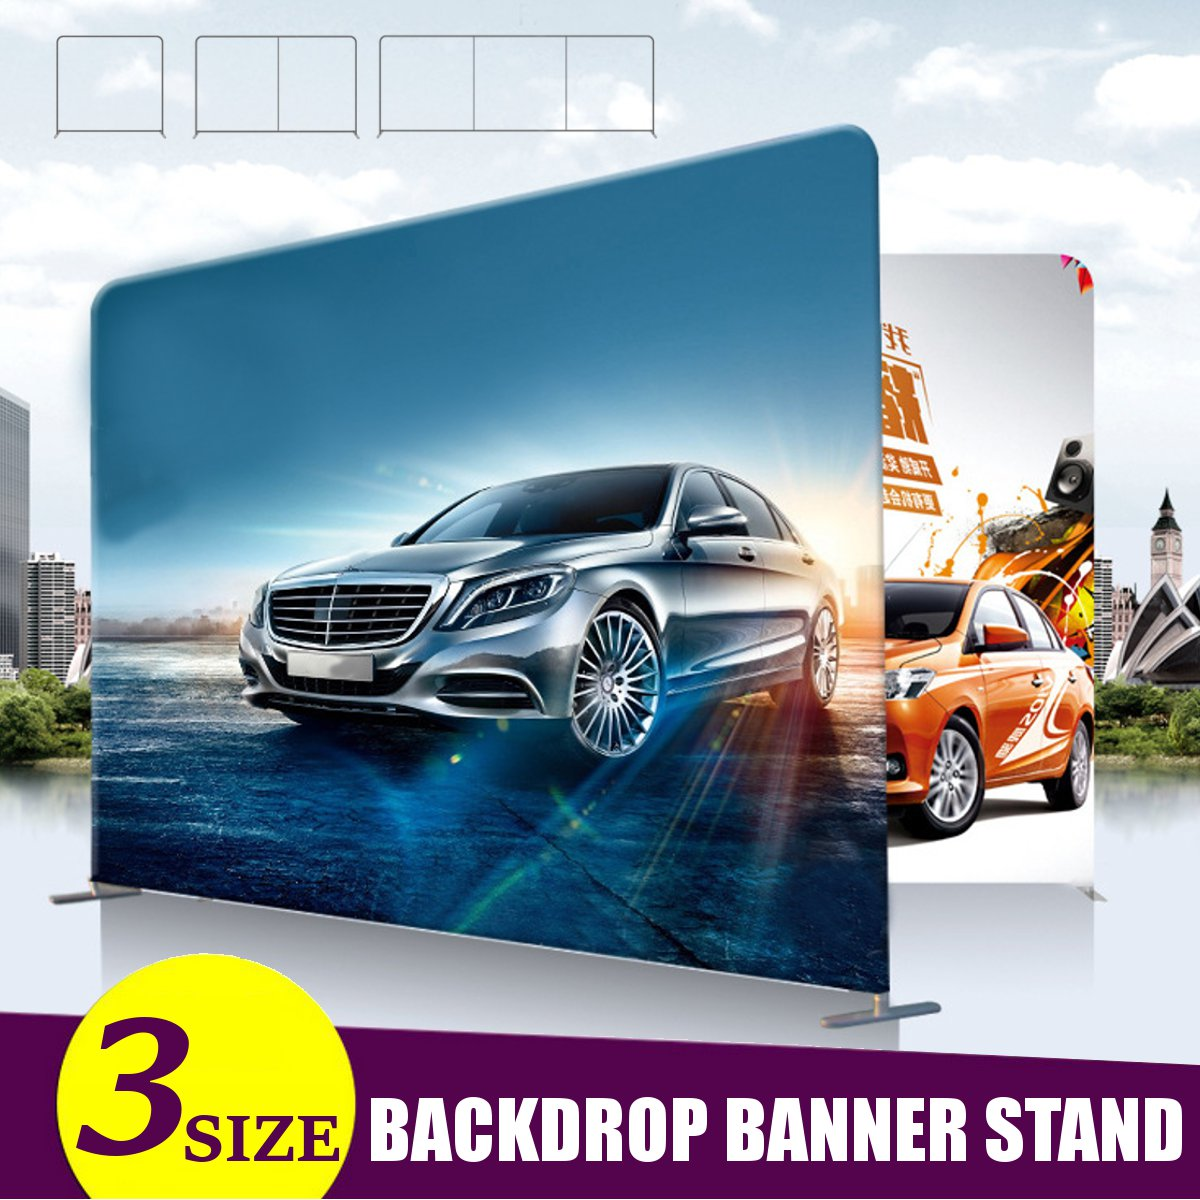 Folding Portable Aluminum Alloy Banner Stand Party Wedding Wall Frame Backdrop Display Rack Presentation Advertising Stands